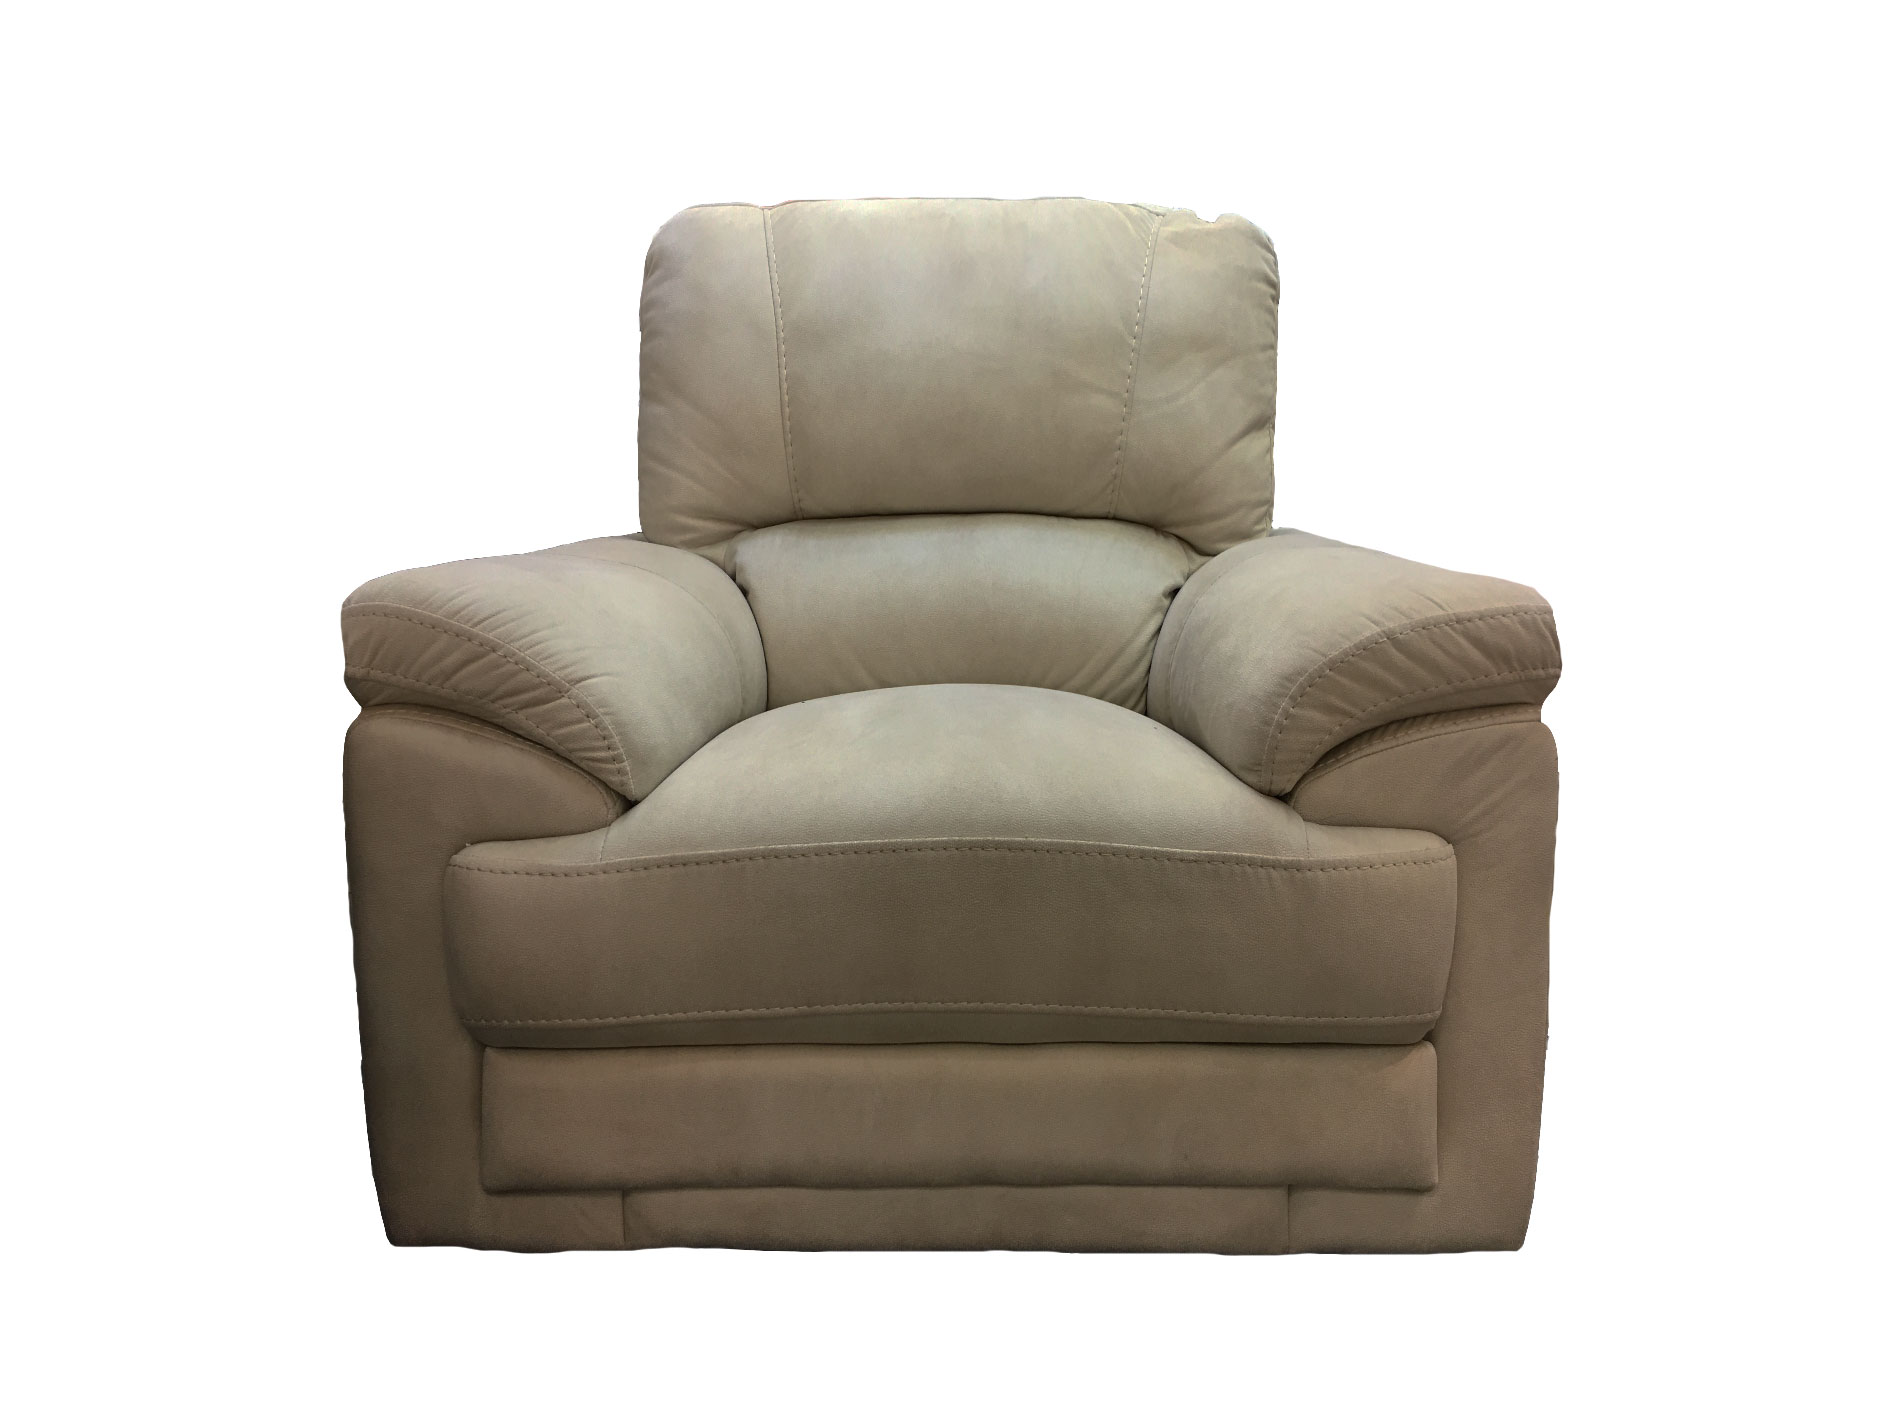 electric recliner sofa singapore beds furniture village cheers  9559 l1 1 seater fabric best tech